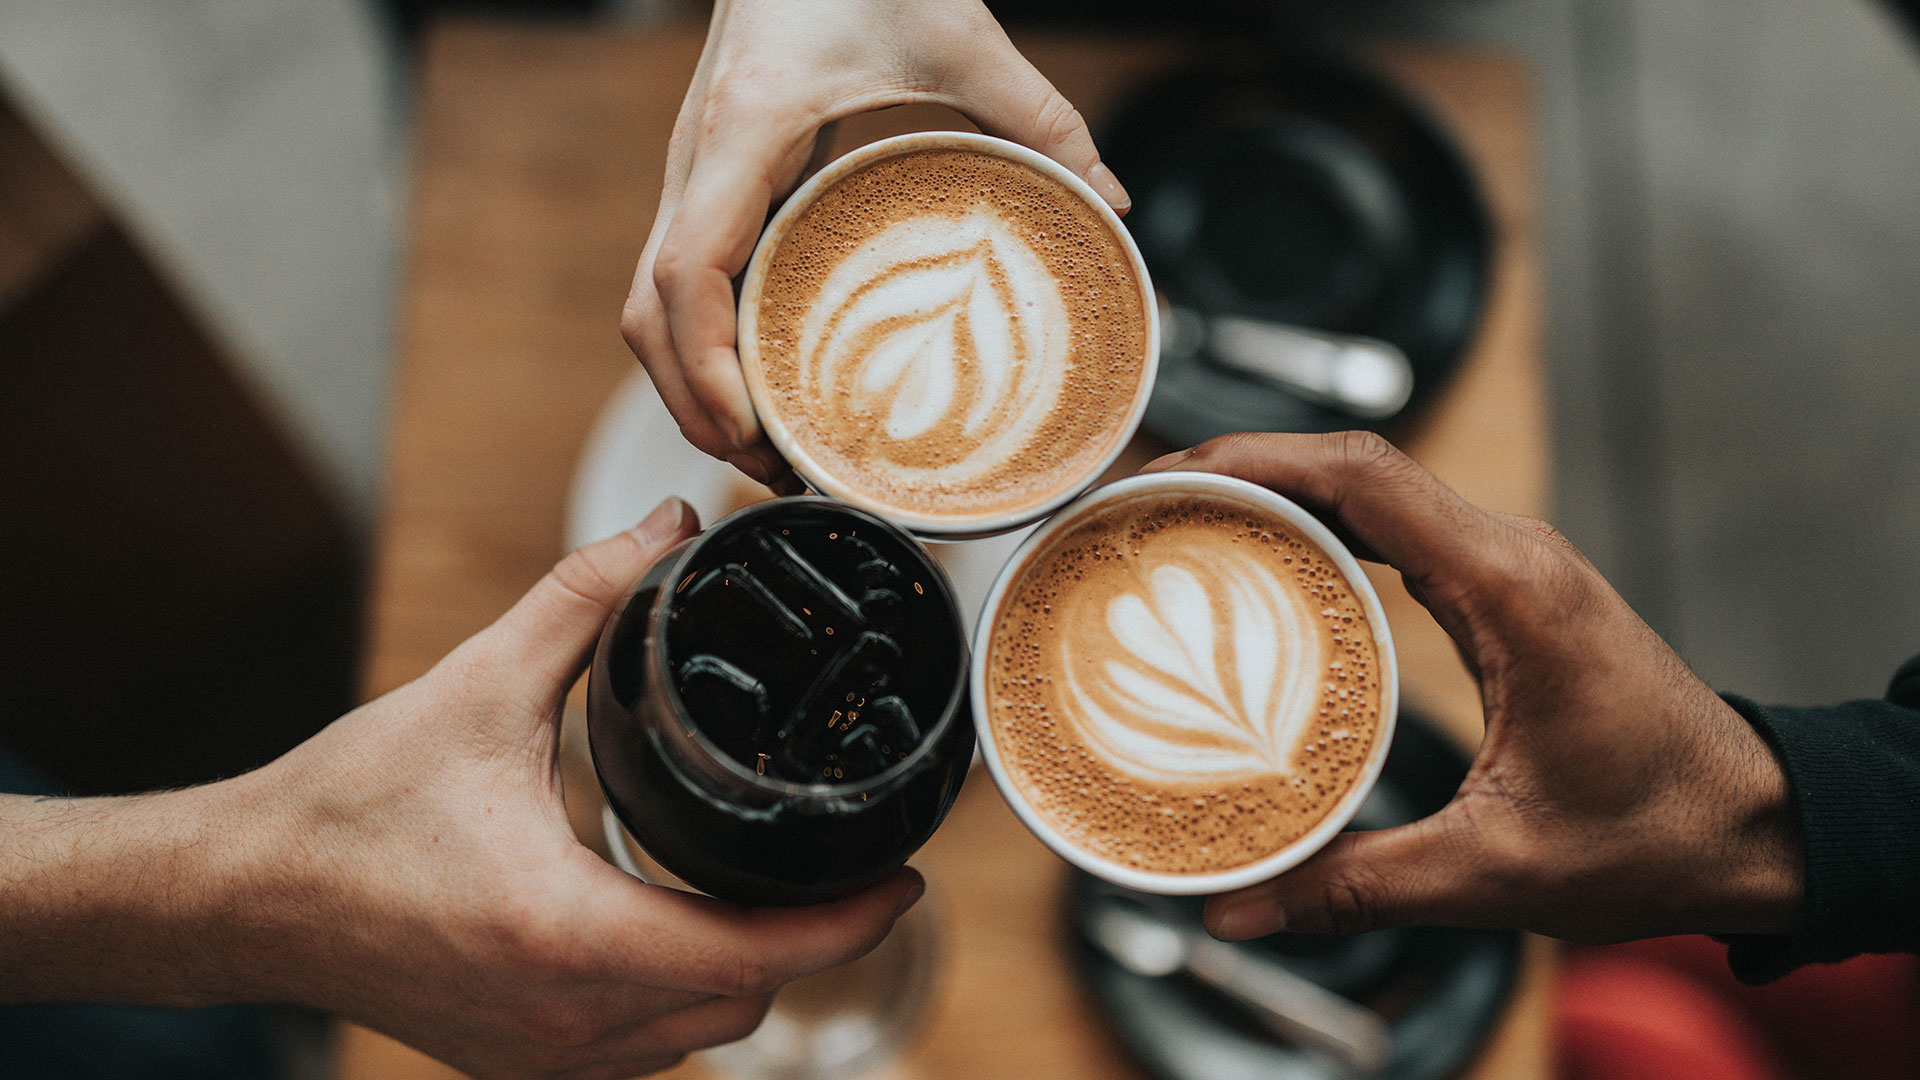 Young people's hands holding coffee cups